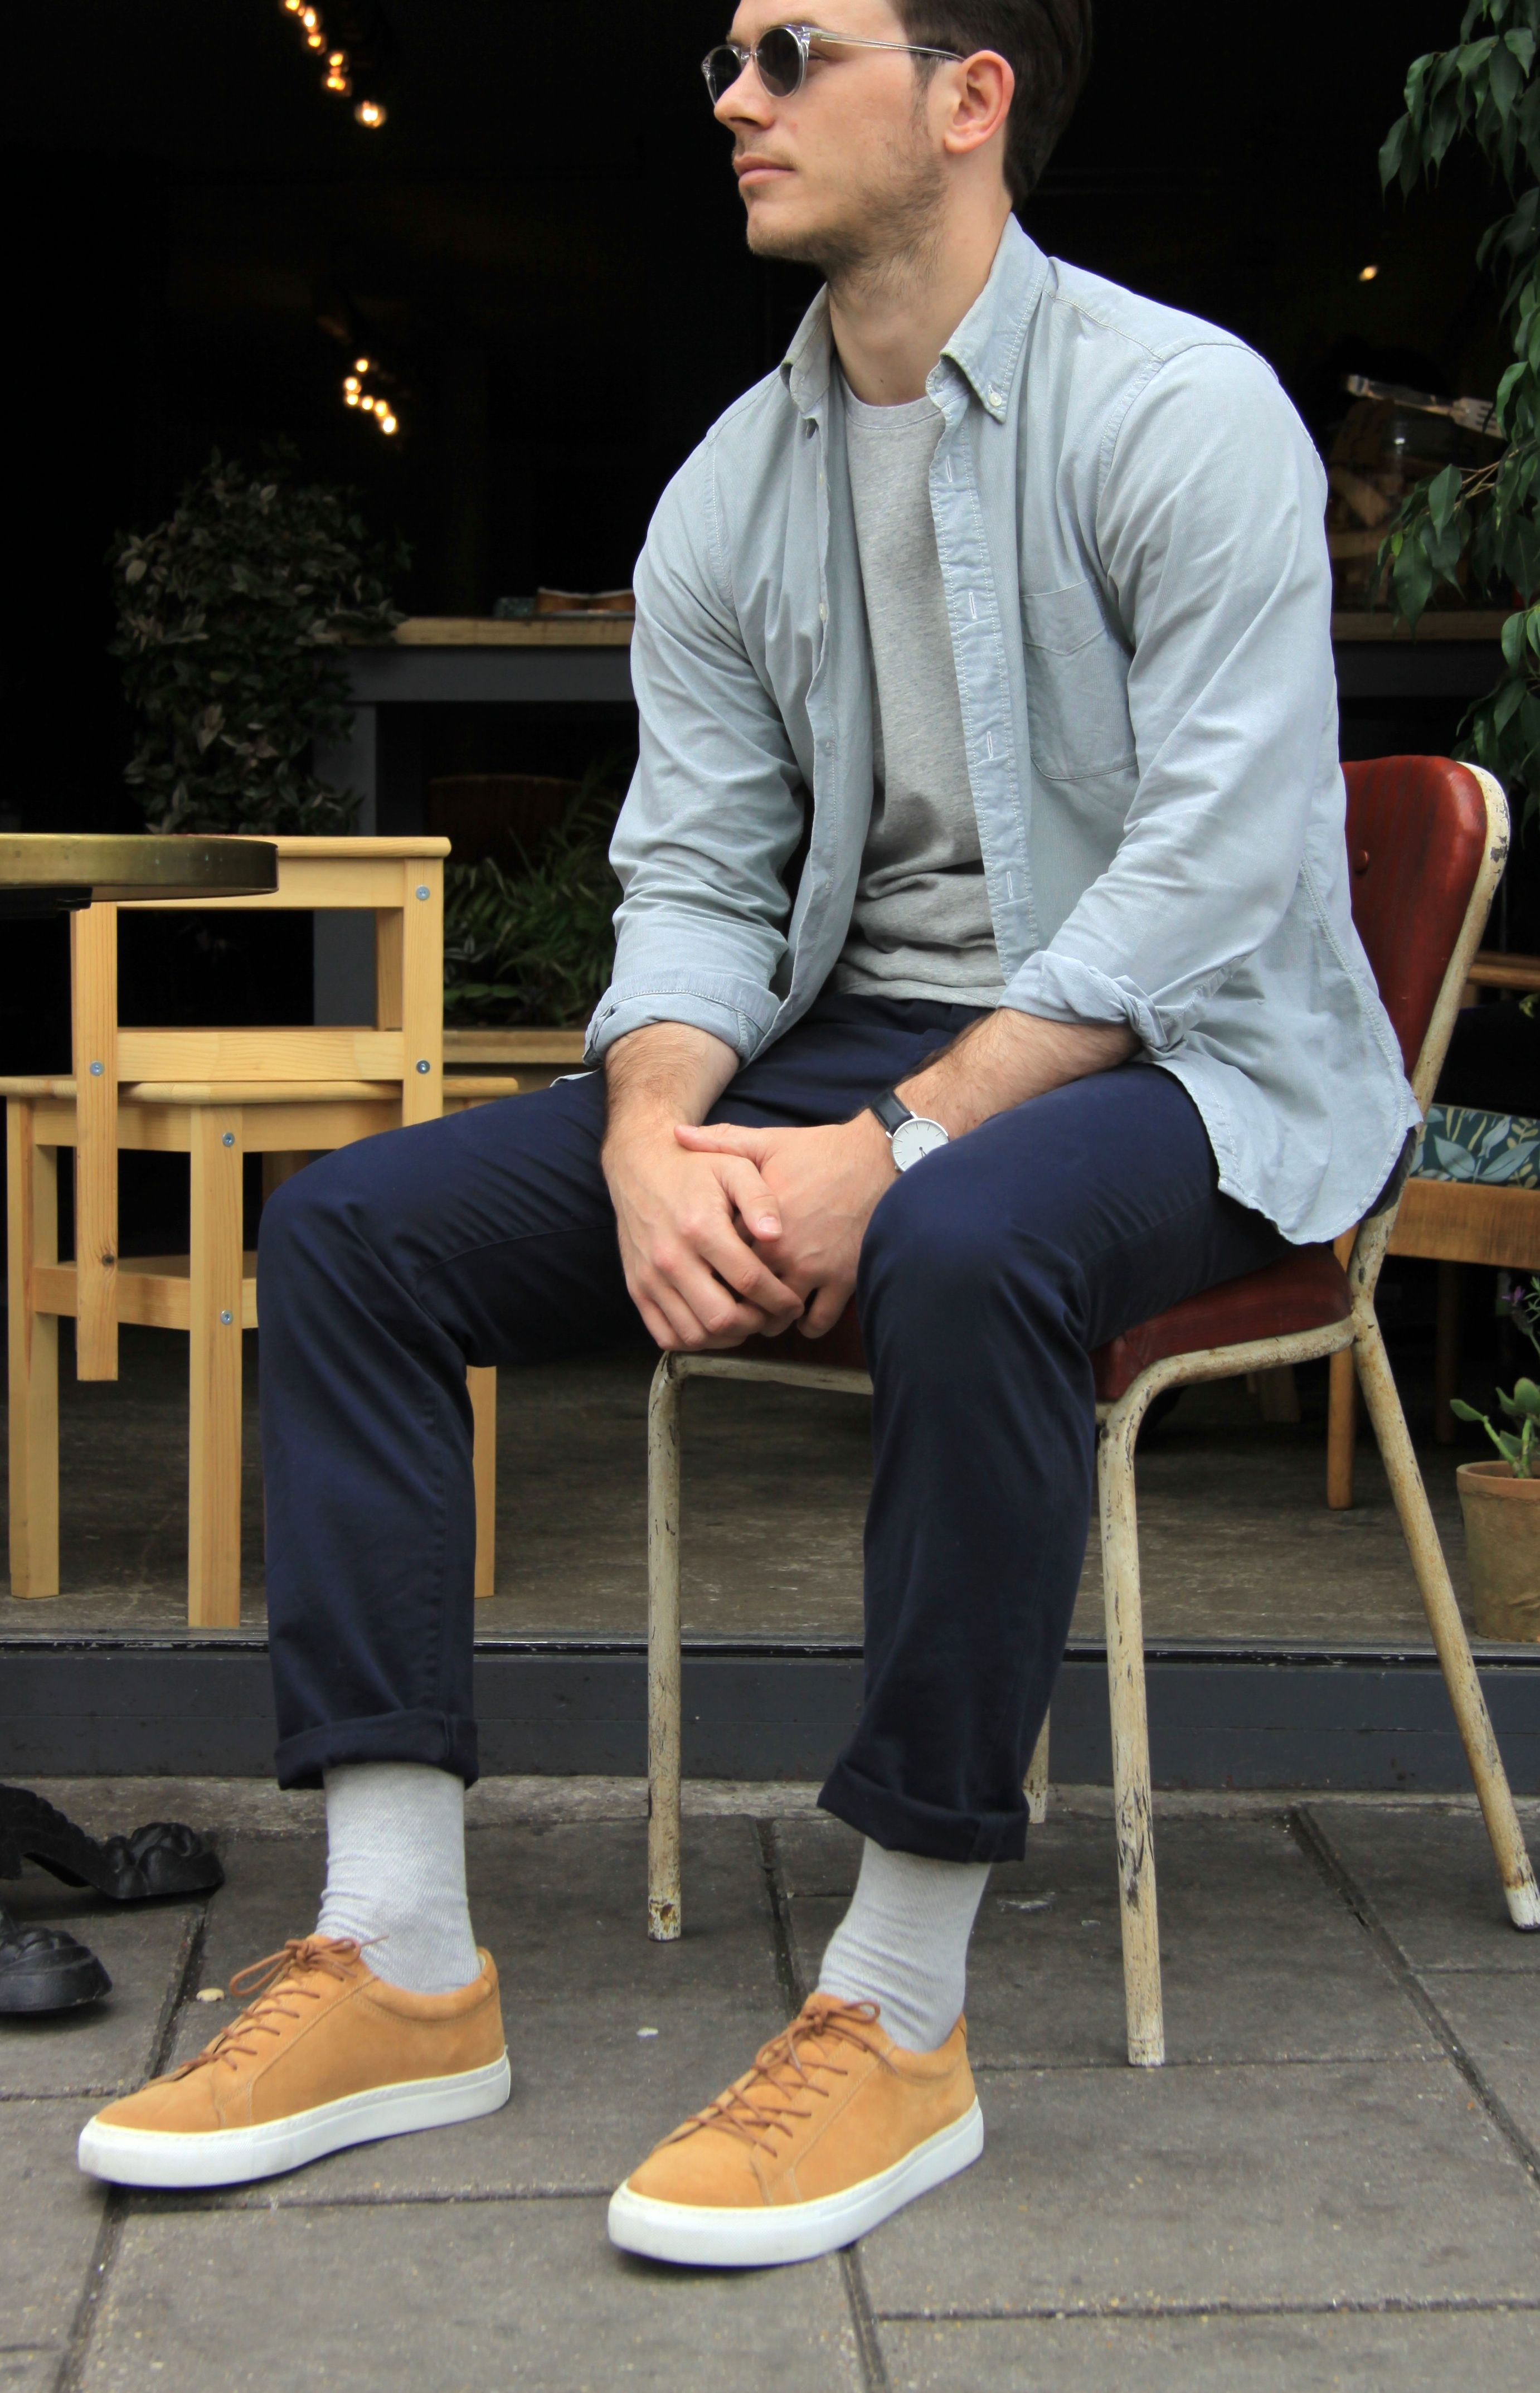 Men's outfit idea for 2021 with chambray shirt, gray crew neck t-shirt, navy chinos, neutral sneakers. Suitable for spring, summer and fall.